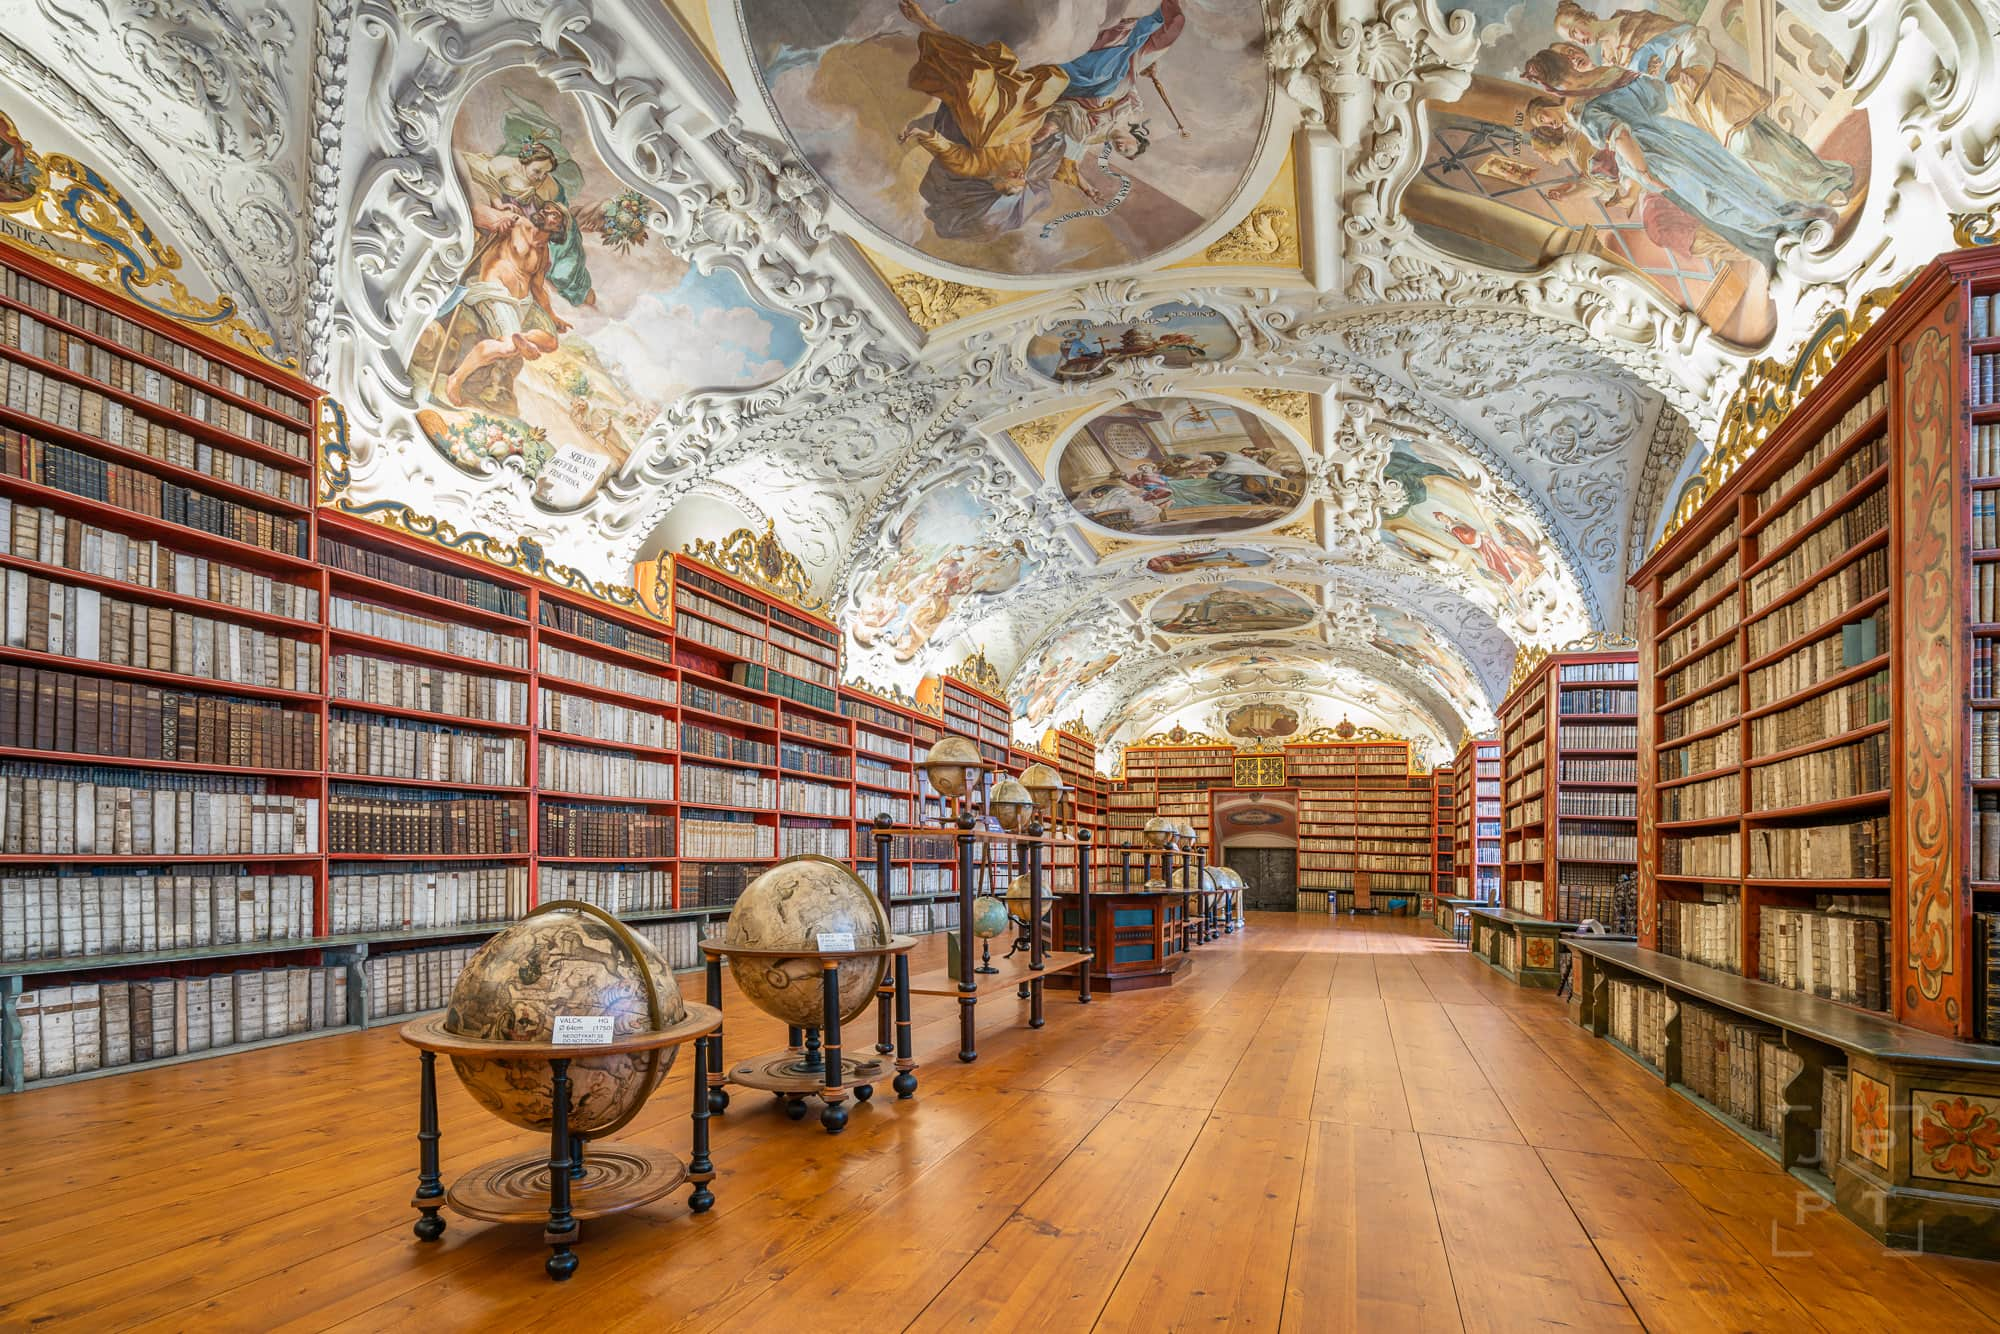 Theological Hall, Strahov Library, Prague